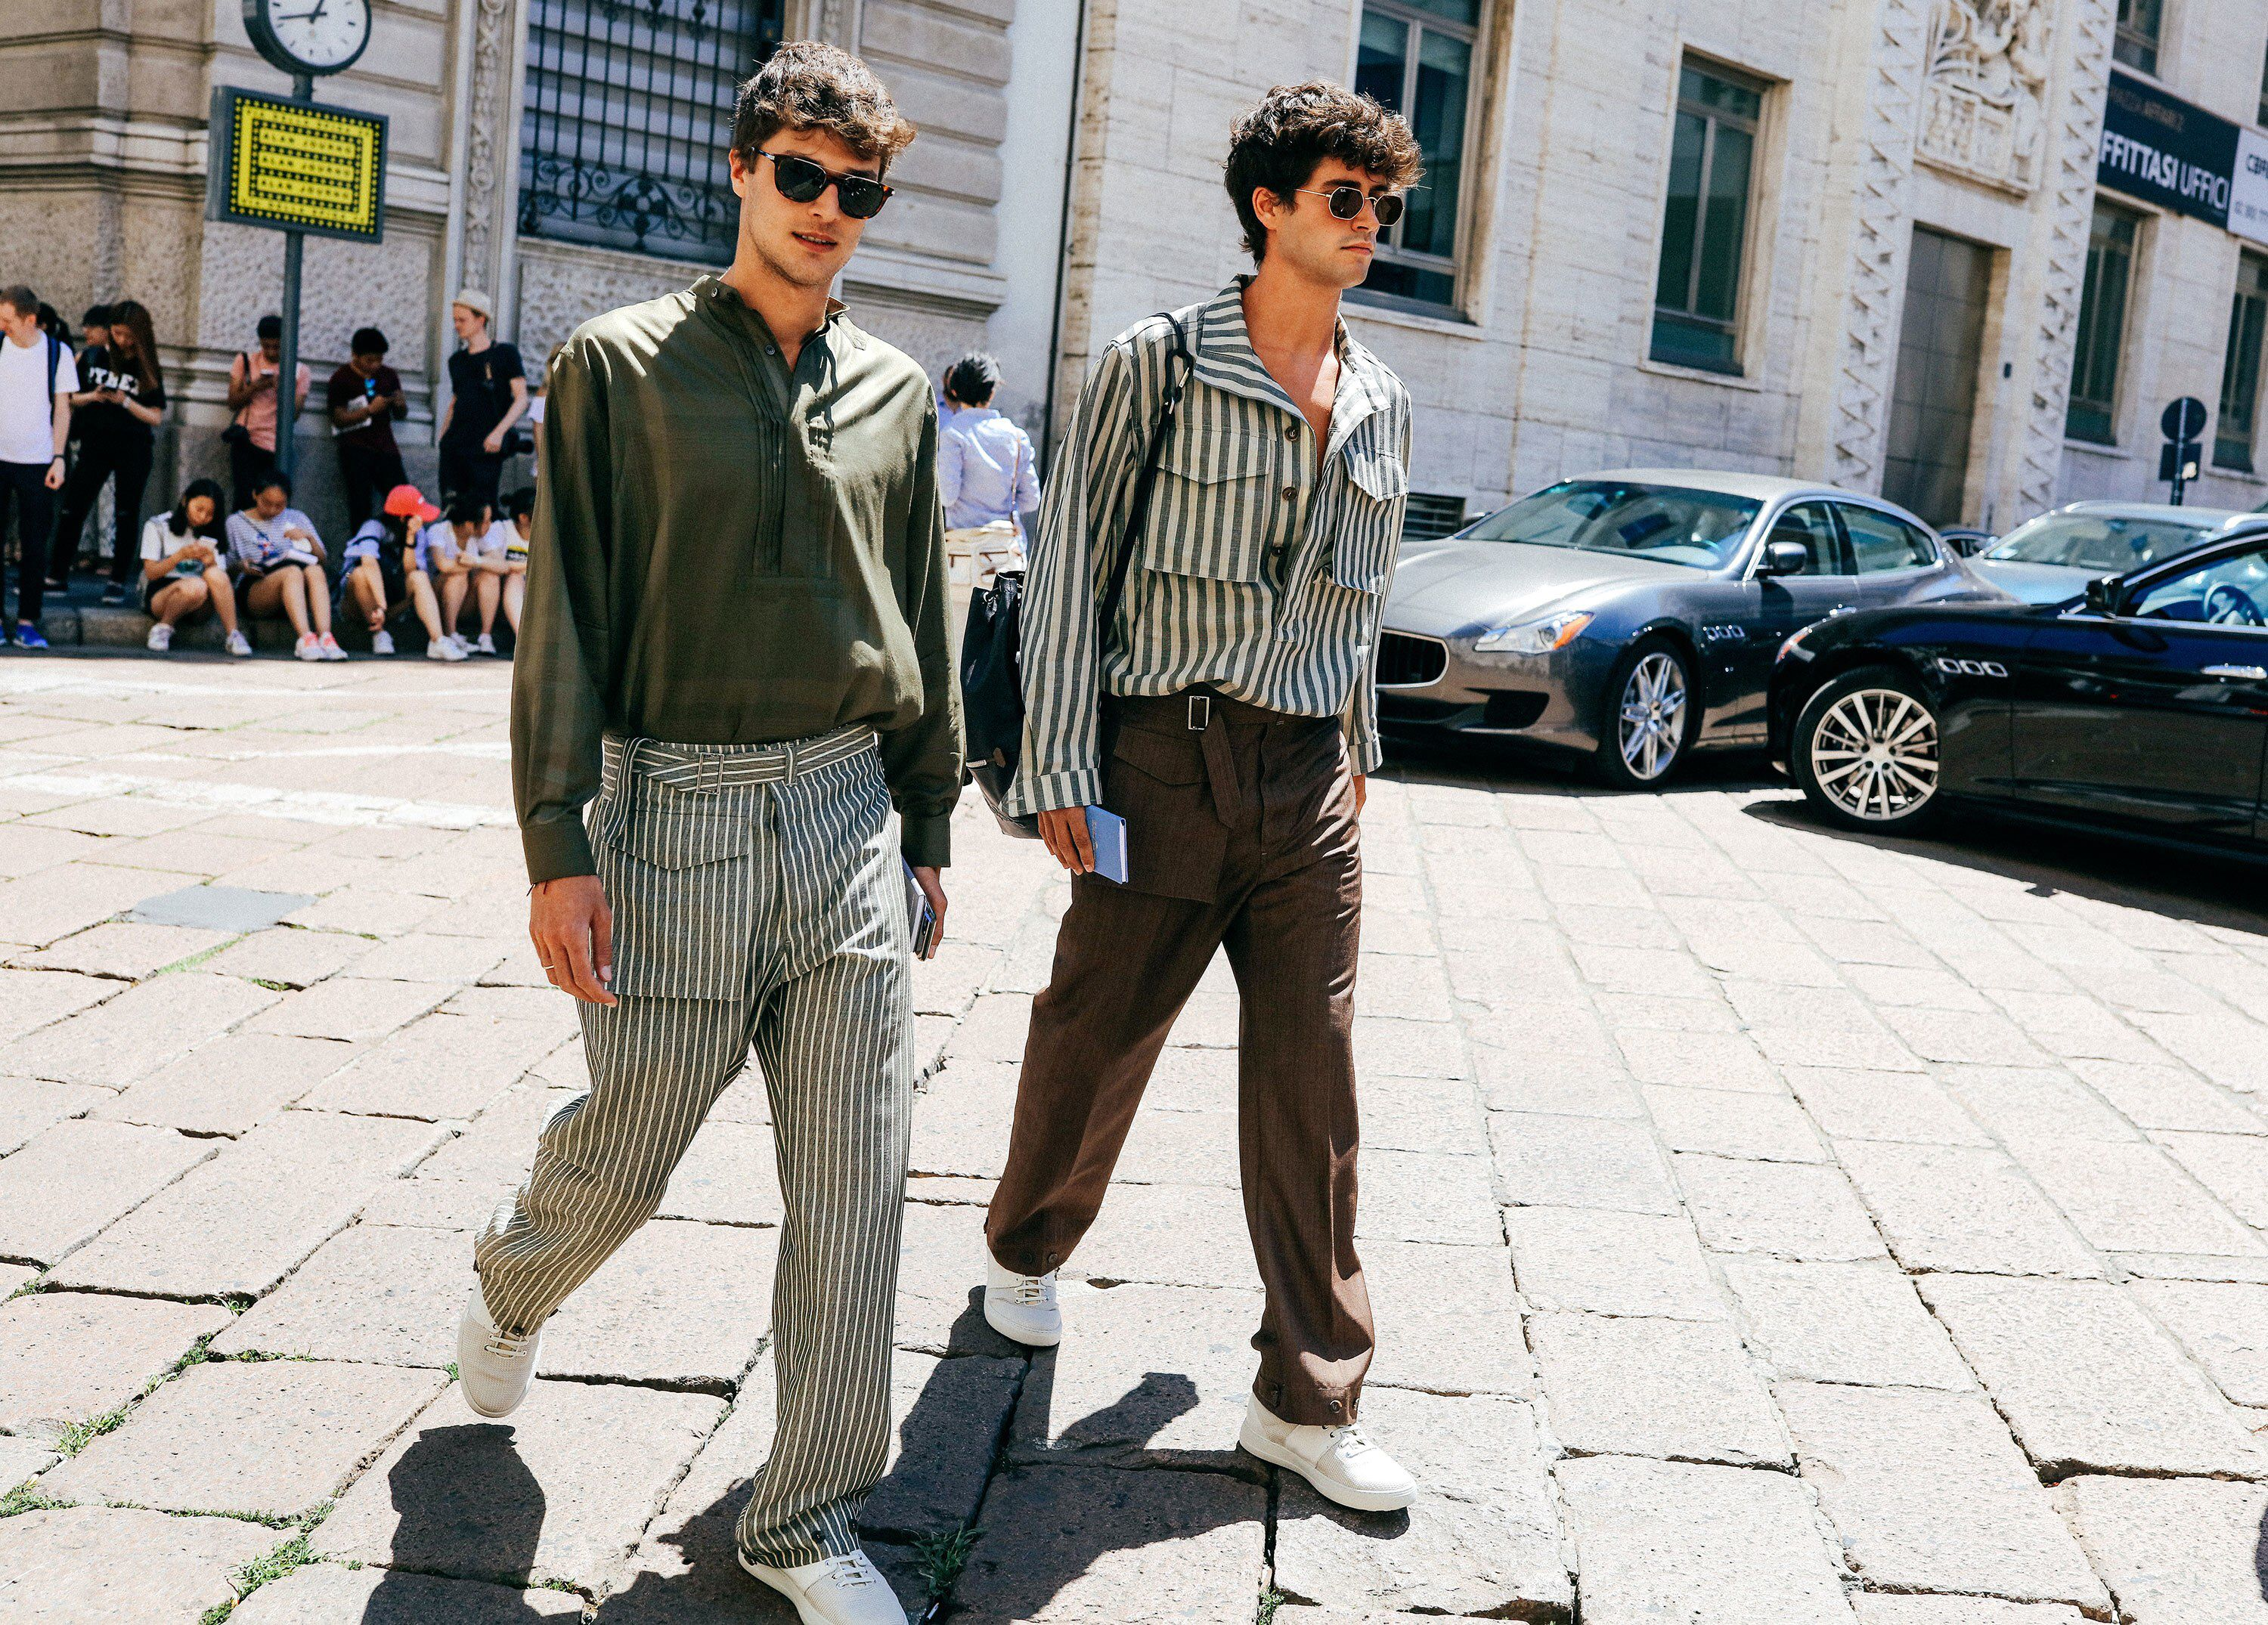 The Spring '18 menswear shows are have landed in hot, sunny Milan. See all the best street style looks here.